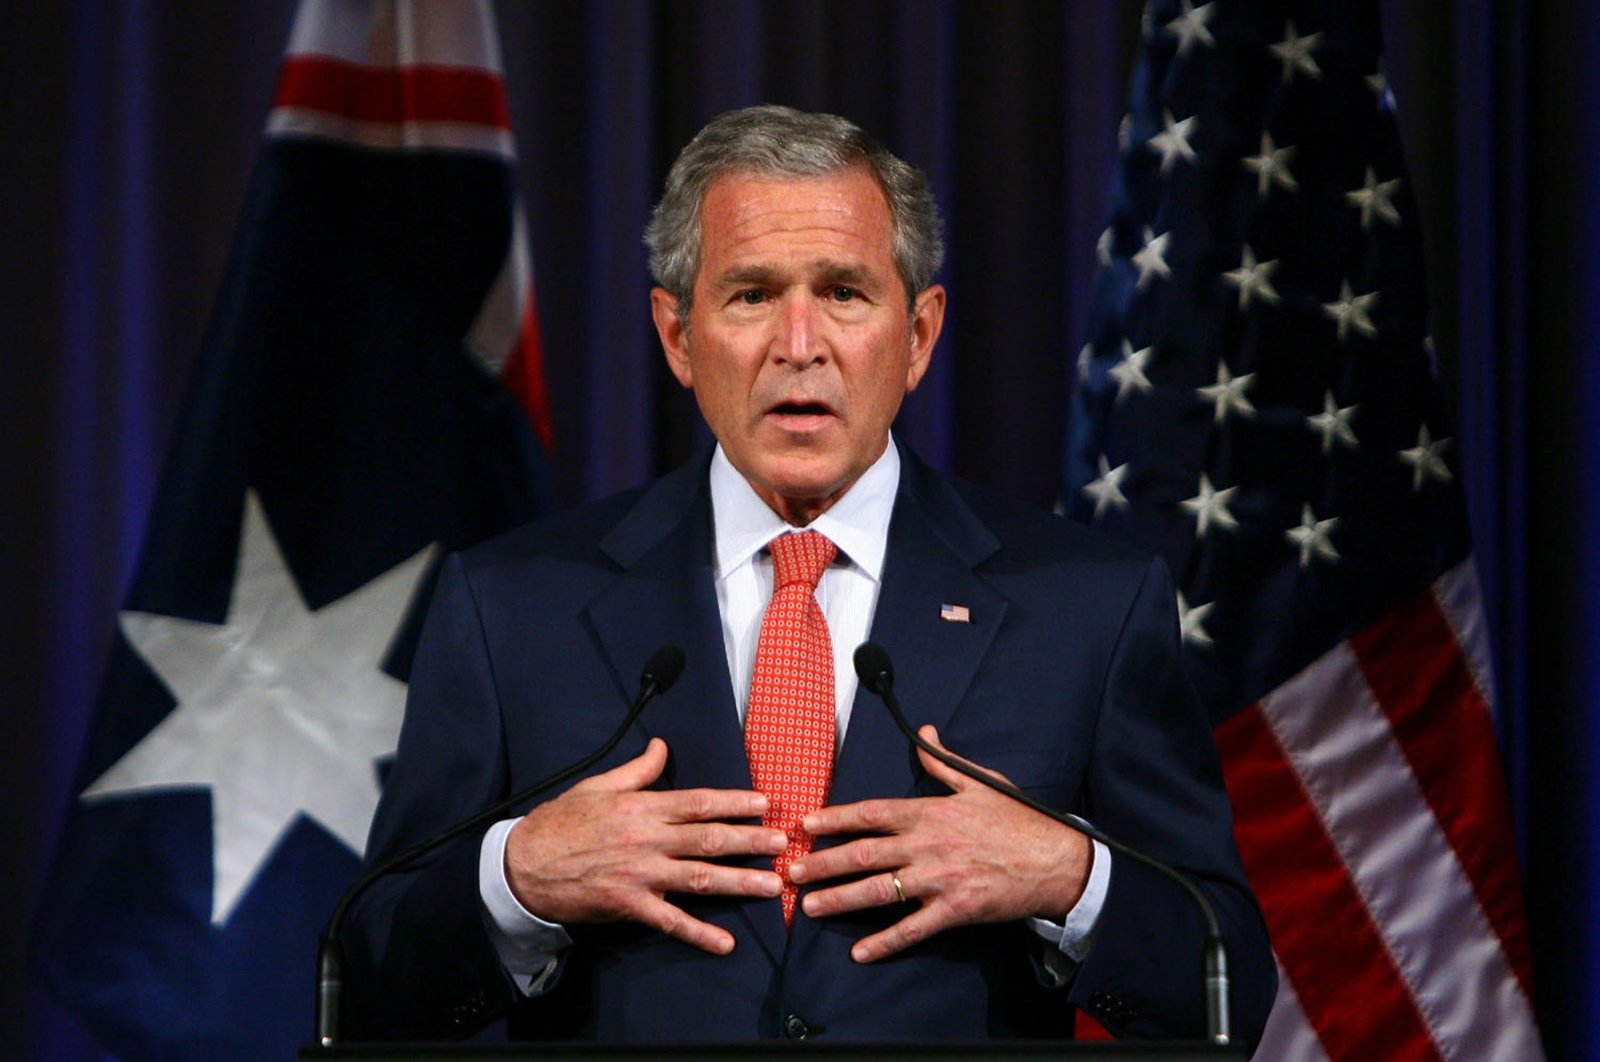 Then-U.S. President George W. Bush addresses the media during the Asia Pacific Economic Cooperation forum (APEC) on September 5, 2007, in Sydney, Australia. (Getty Images)